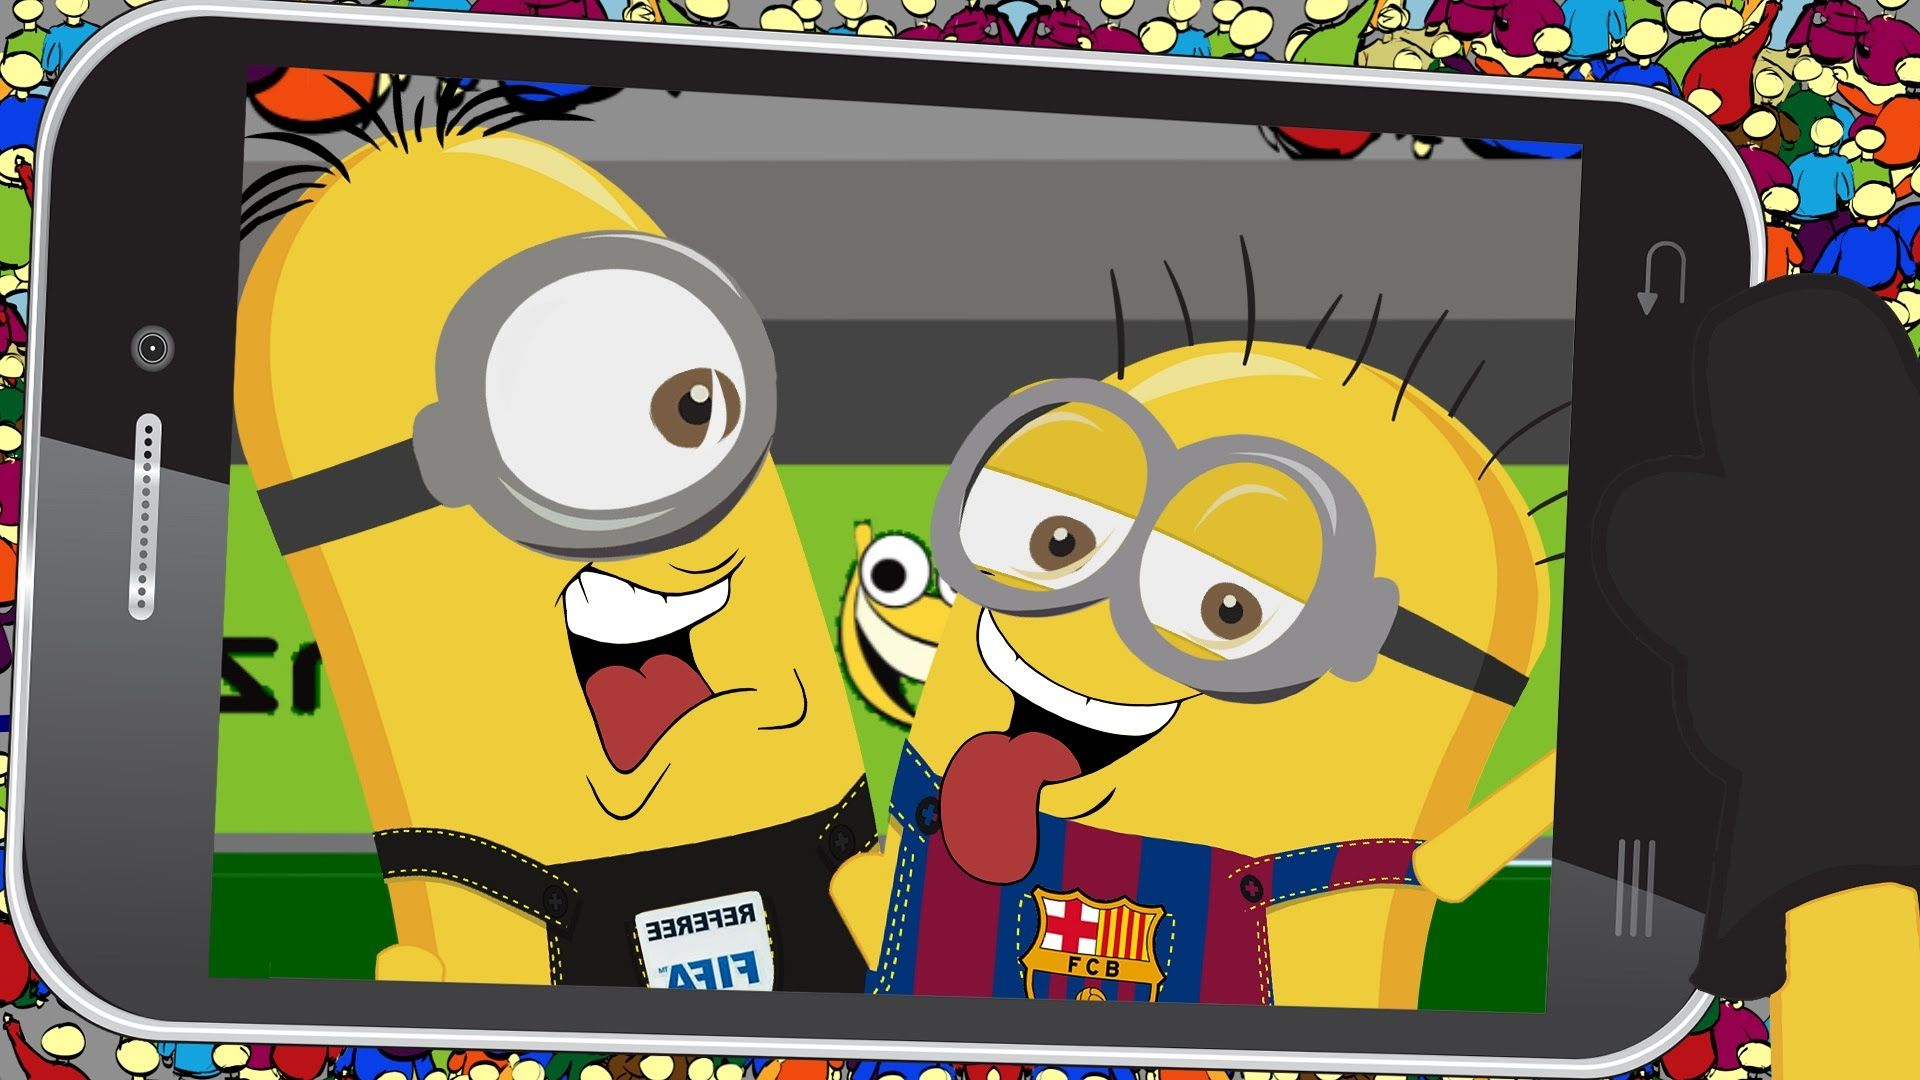 barcelona vs real madrid minions football game funny